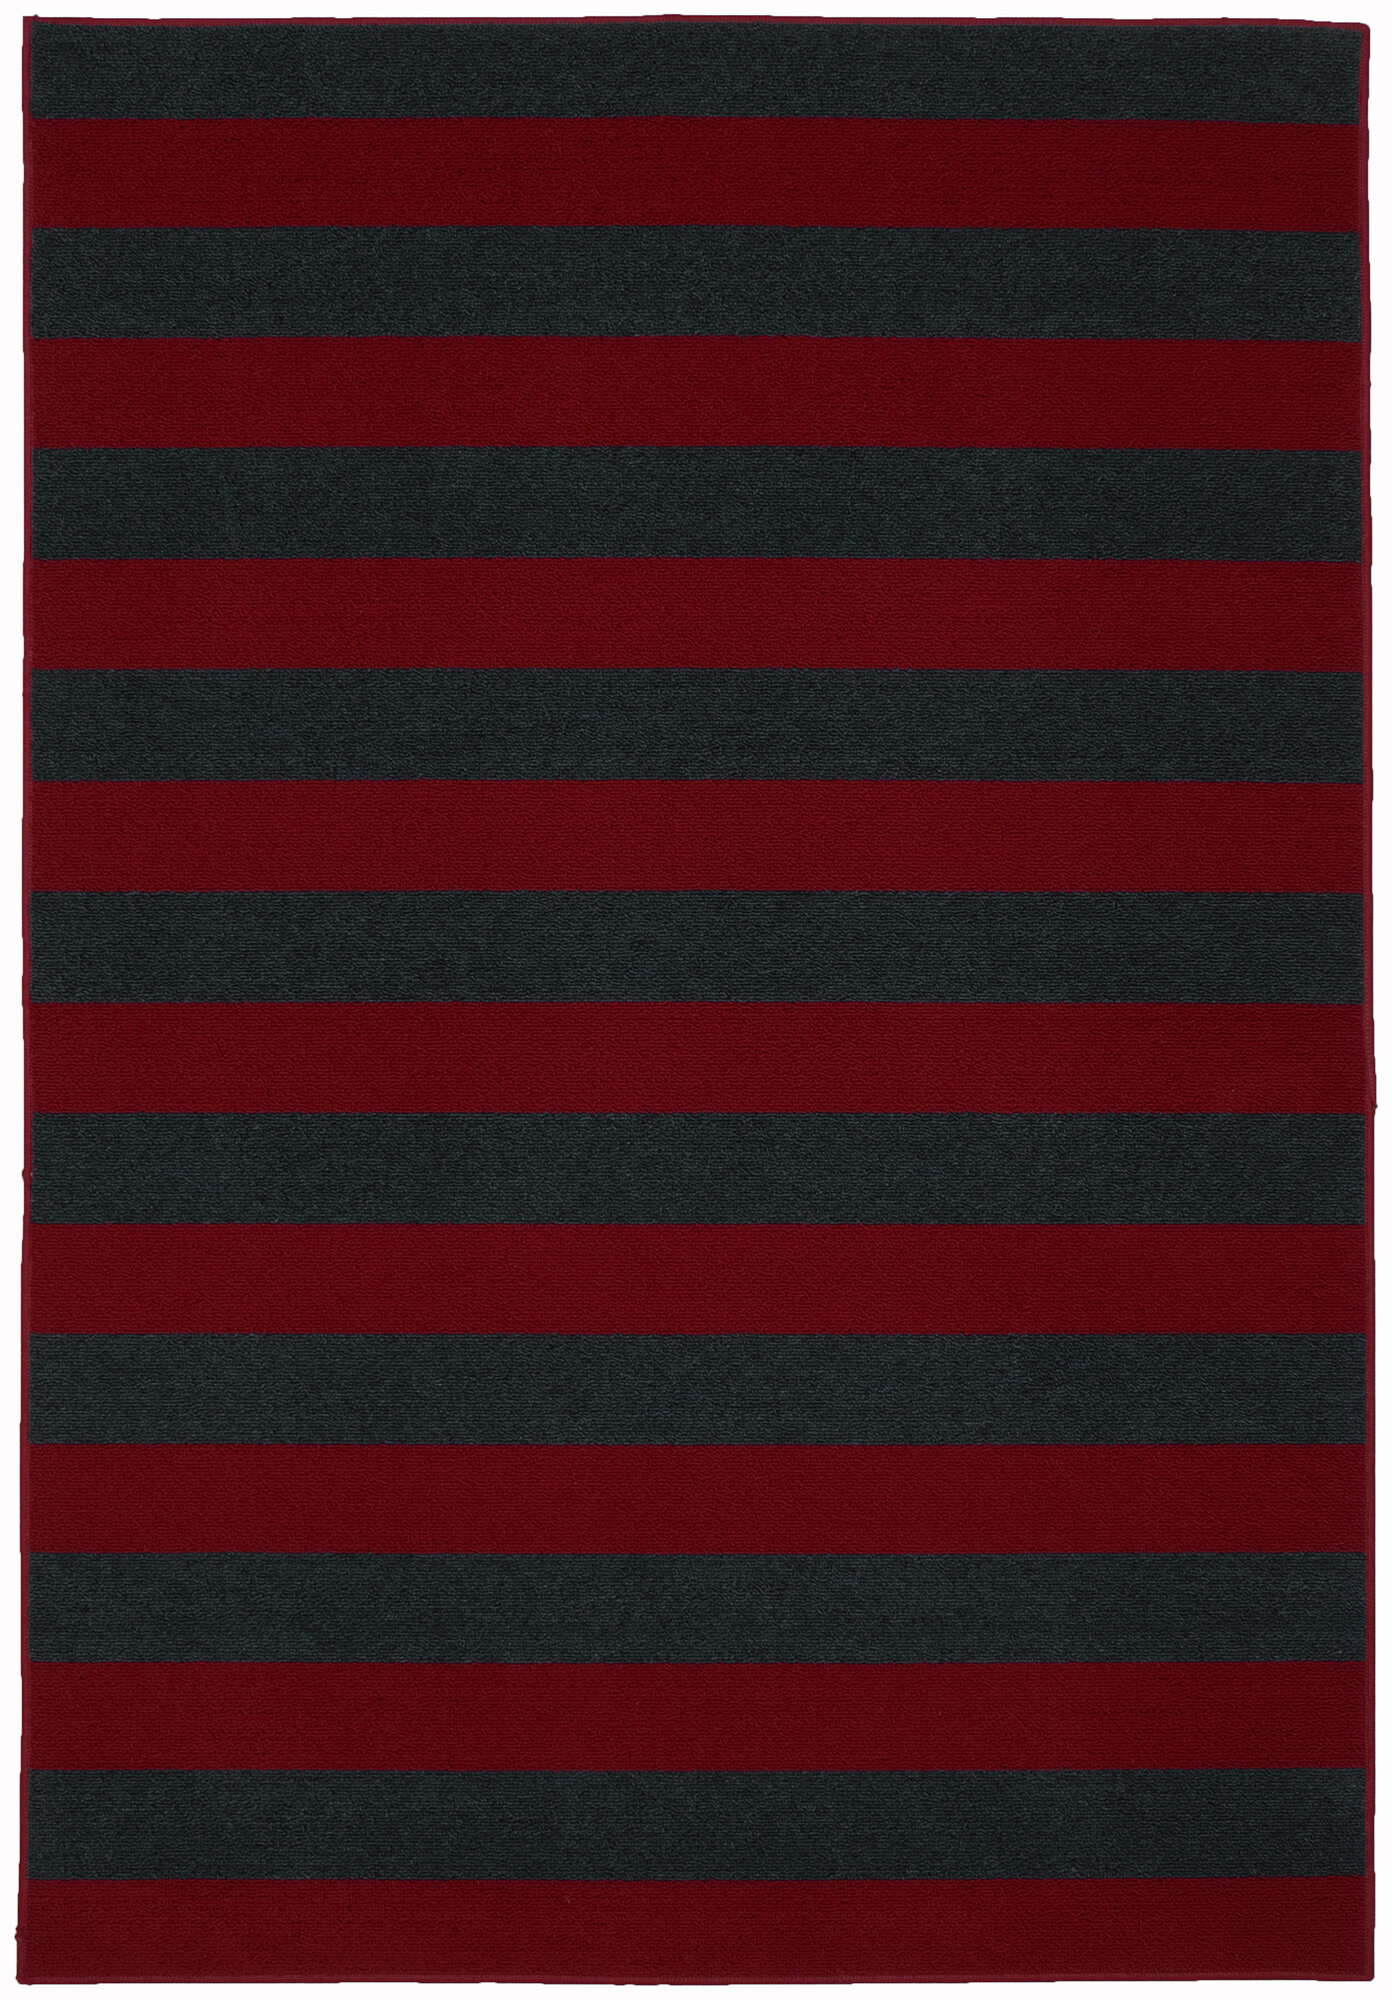 Garland rug rugby red burguandy navy area rug ebay for Red and navy rug